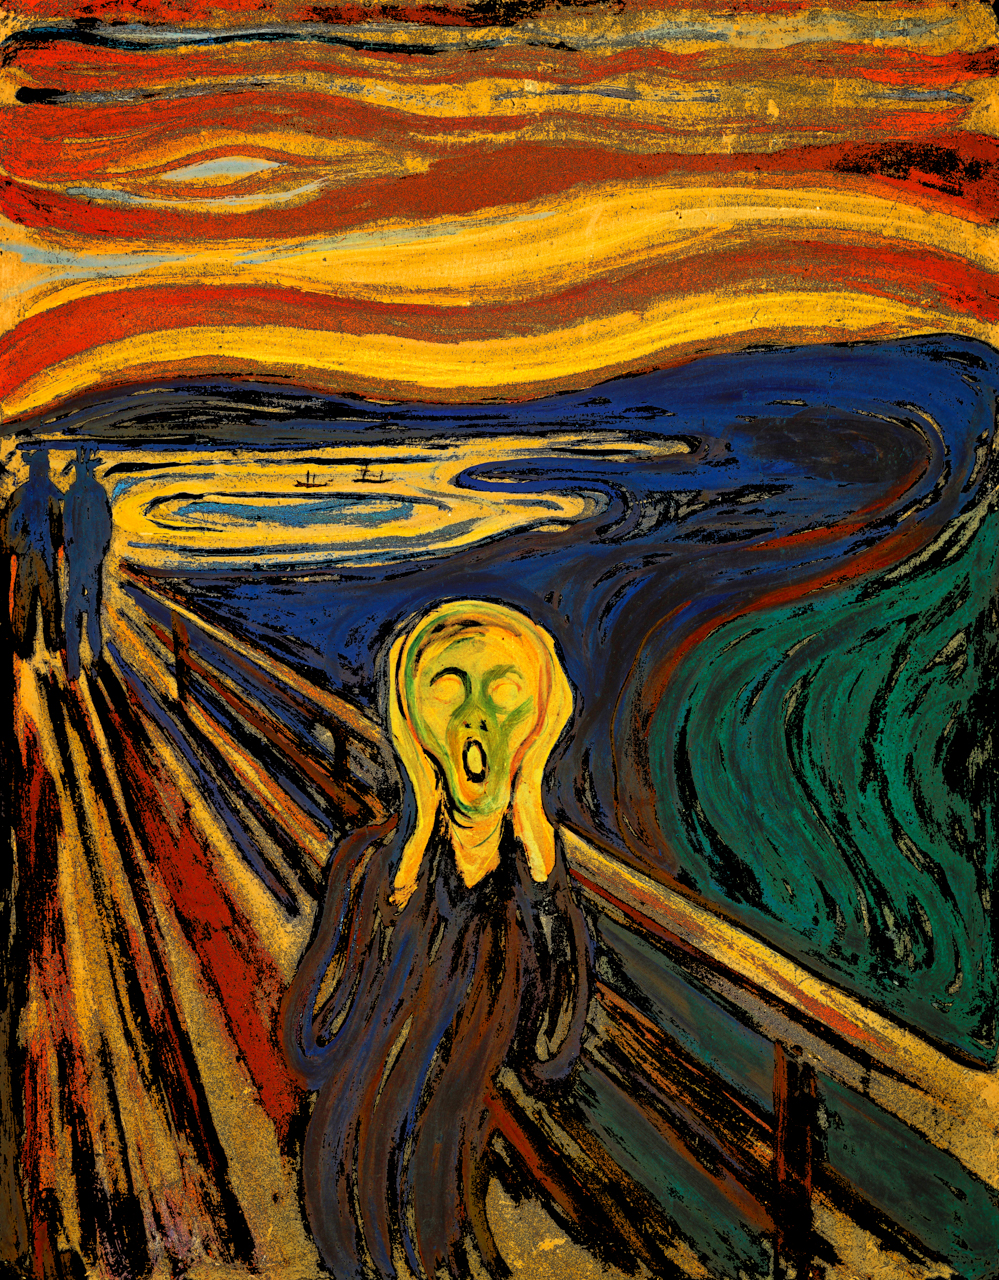 Munch, Edvard (The Scream, 1893)